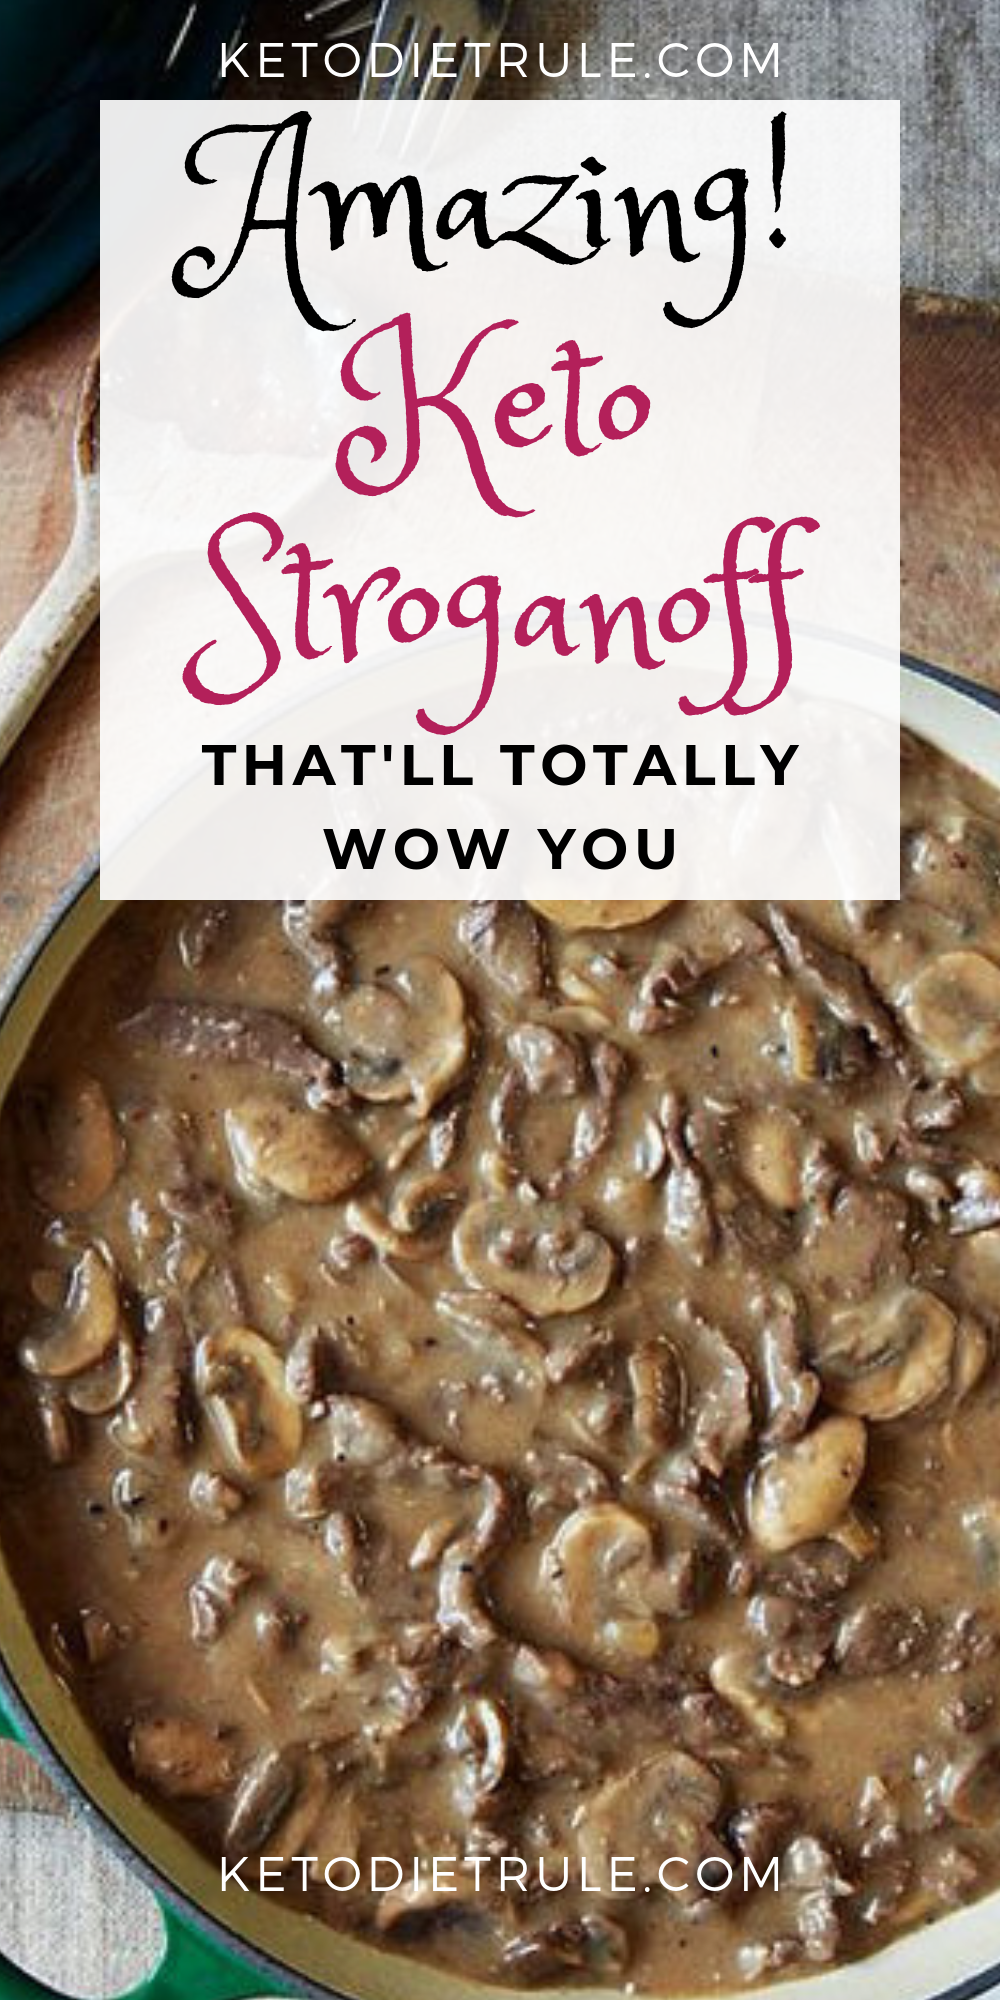 Amazing low-carb keto stroganoff recipe that'll totally wow you..